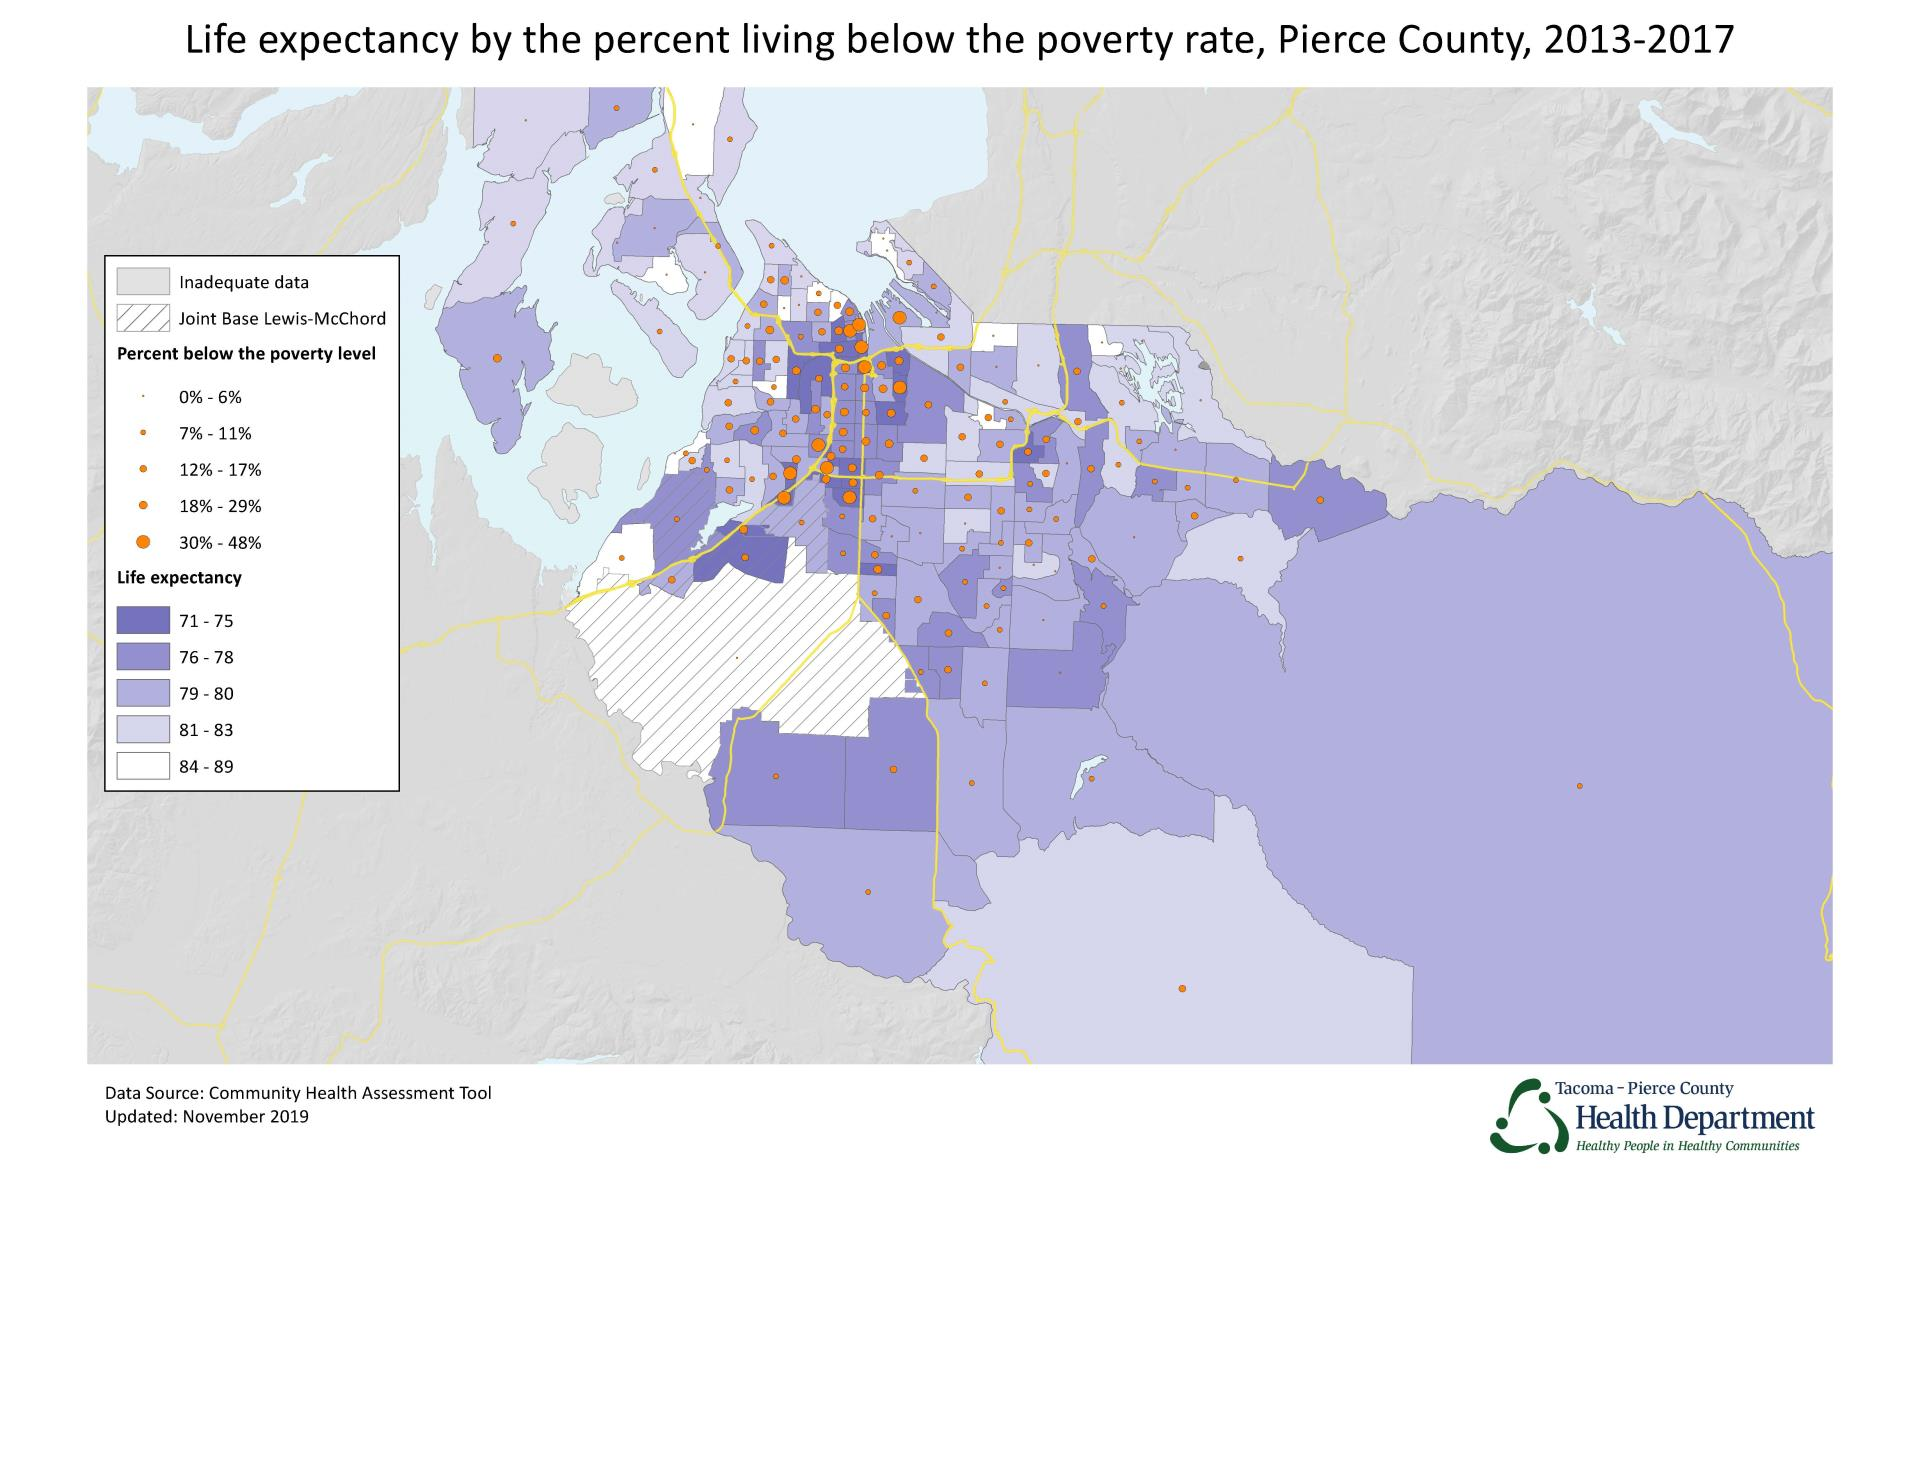 A map displaying life expectancy by the percent living below the poverty rate in Pierce County from 2013-2017